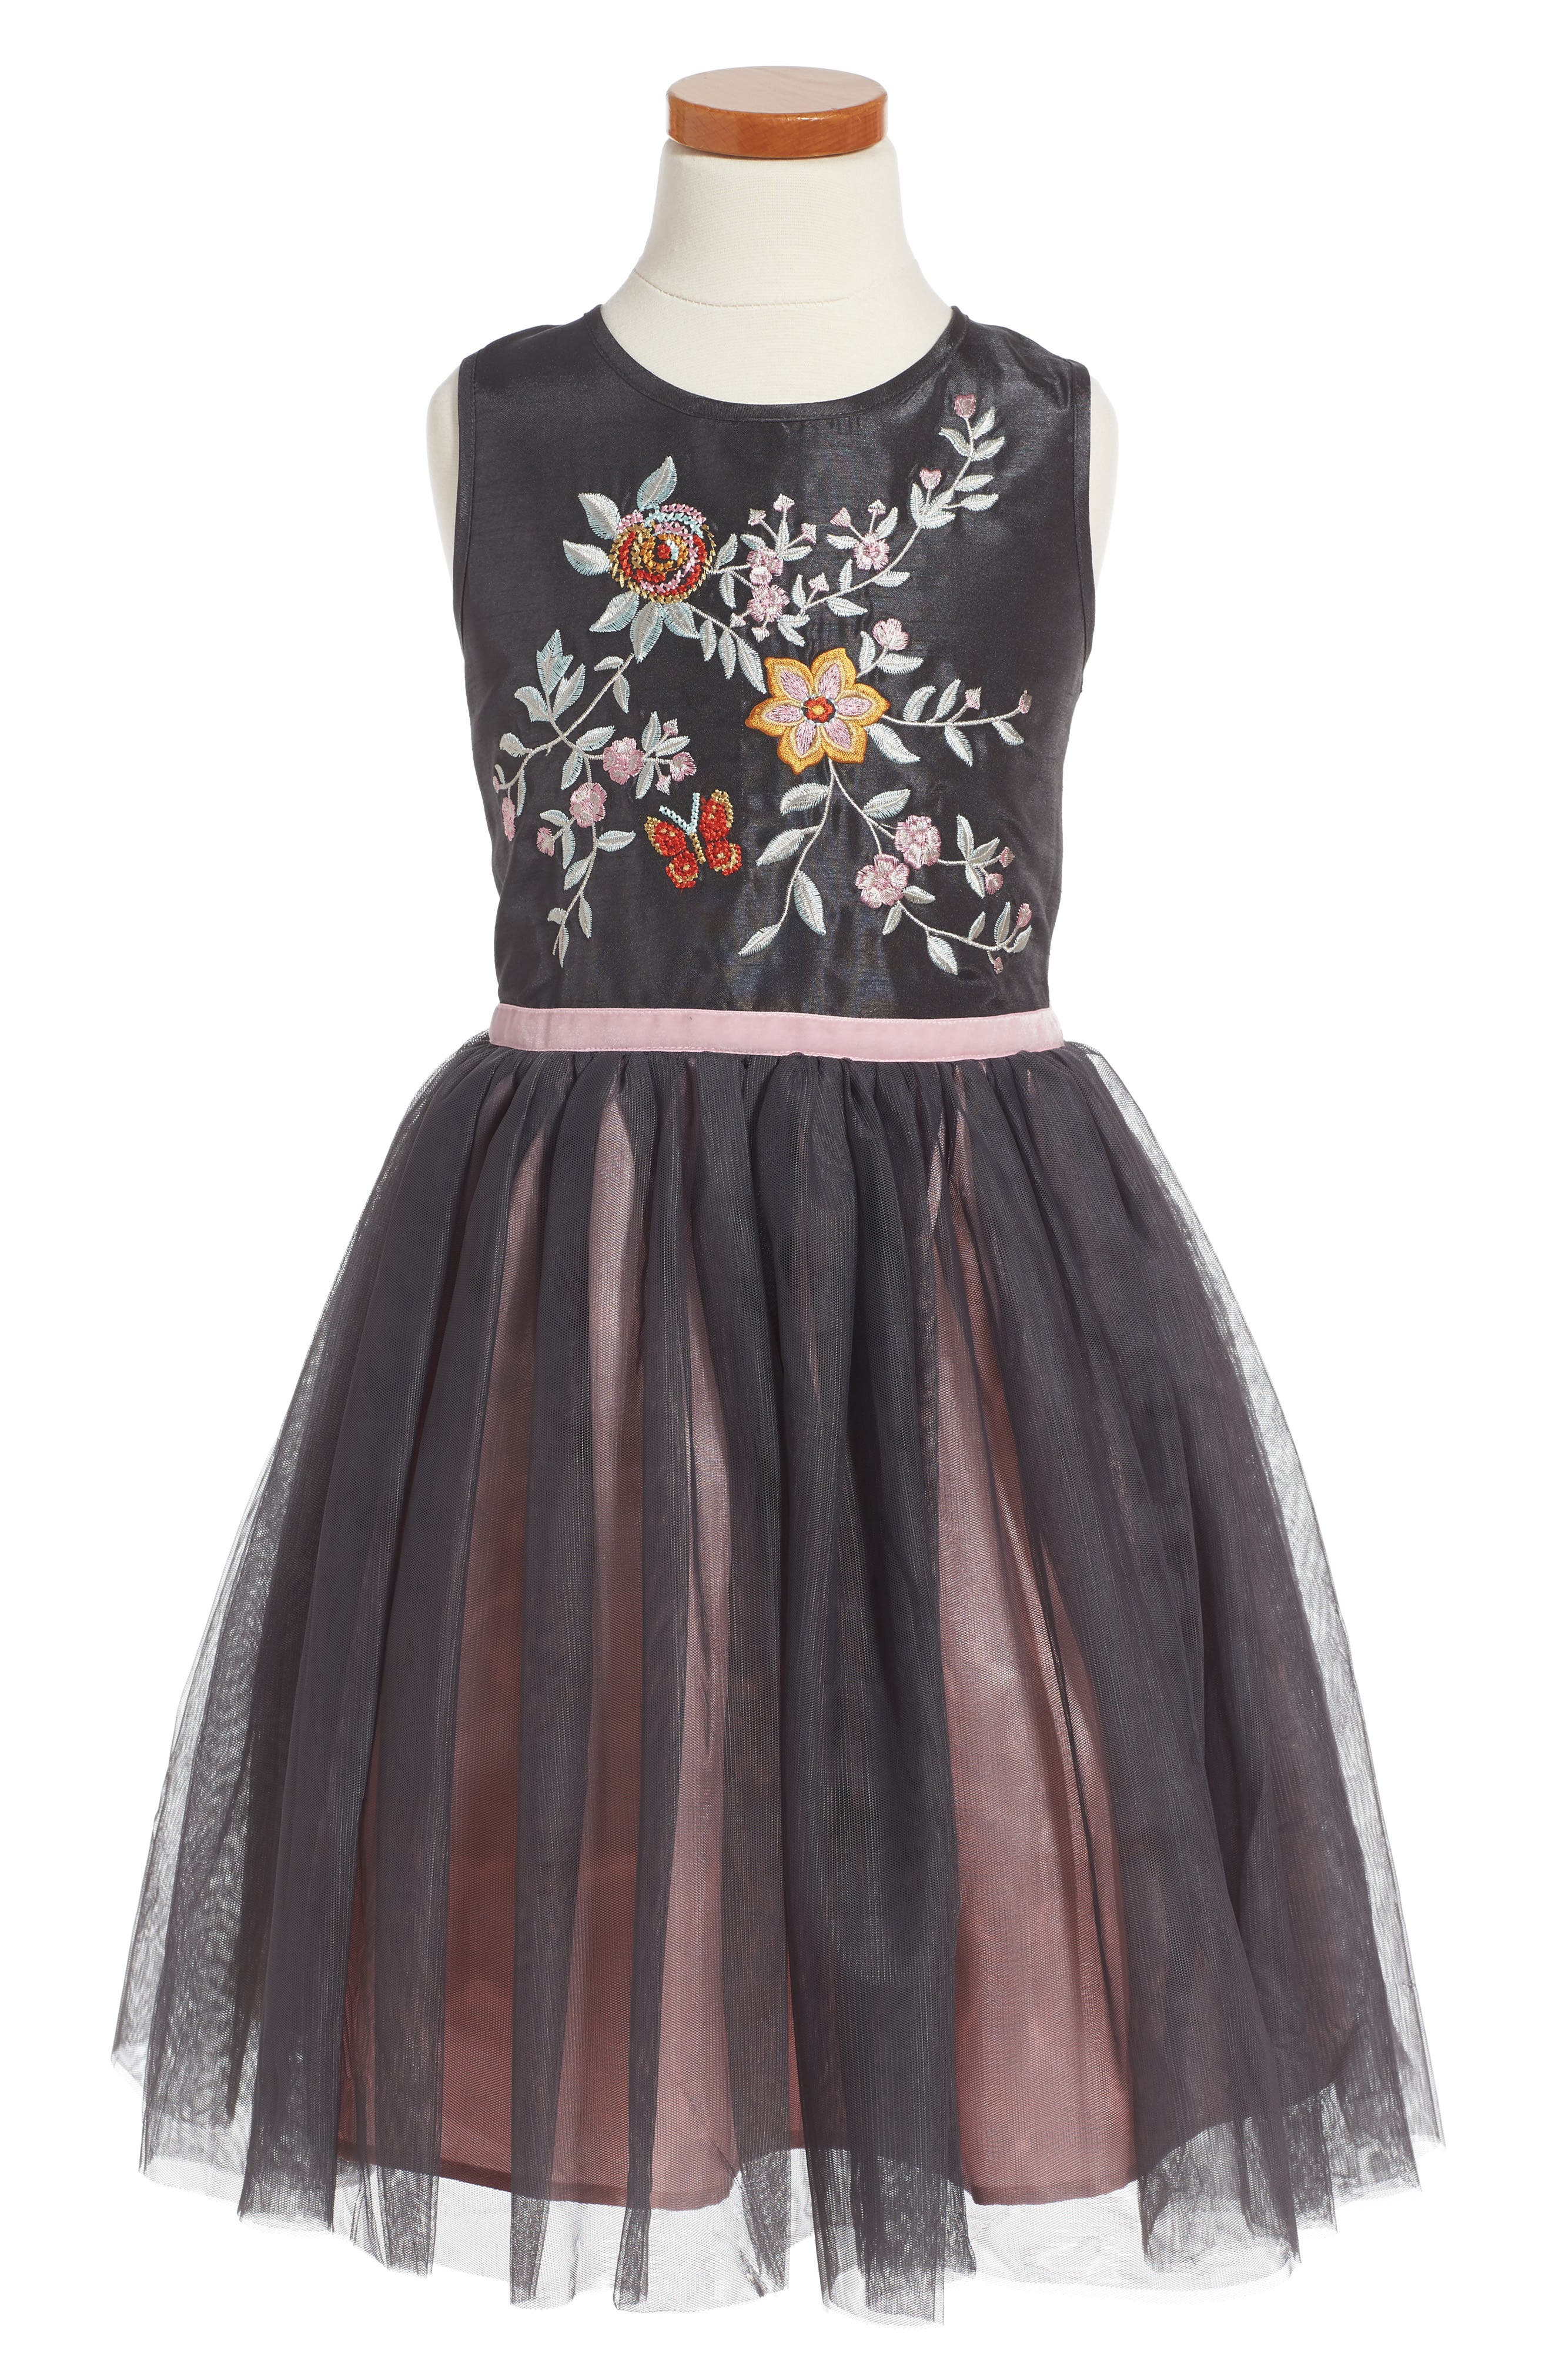 Main Image - Zunie Embroidered Fit & Flare Dress (Toddler Girls, Little Girls & Big Girls)